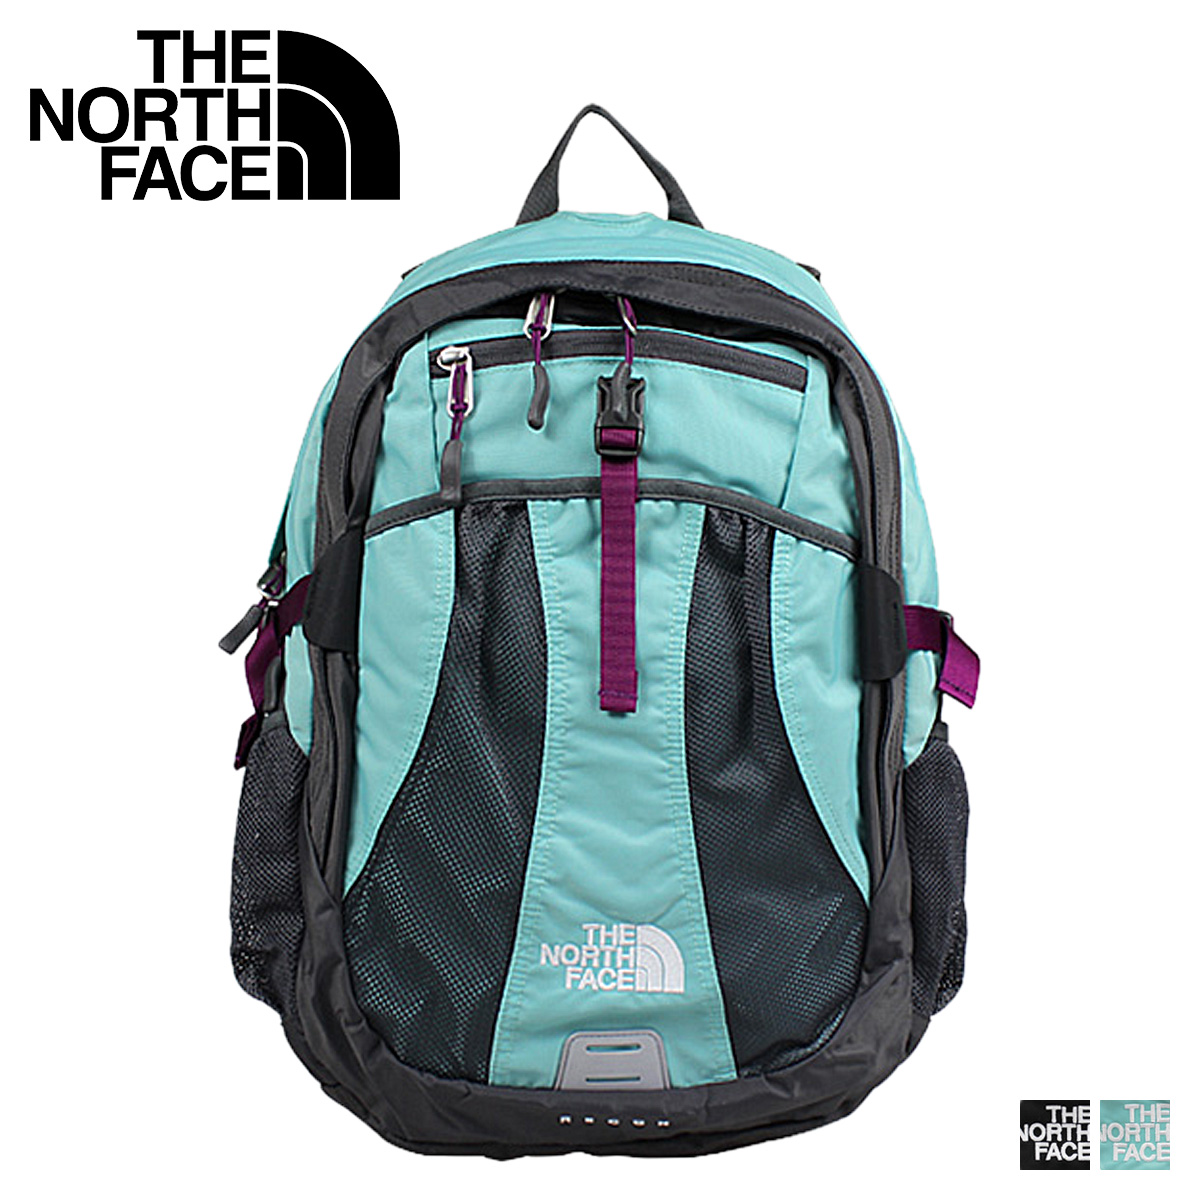 78f1a040d6 ALLSPORTS: The north face THE NORTH FACE women's Backpack Backpack 2 ...